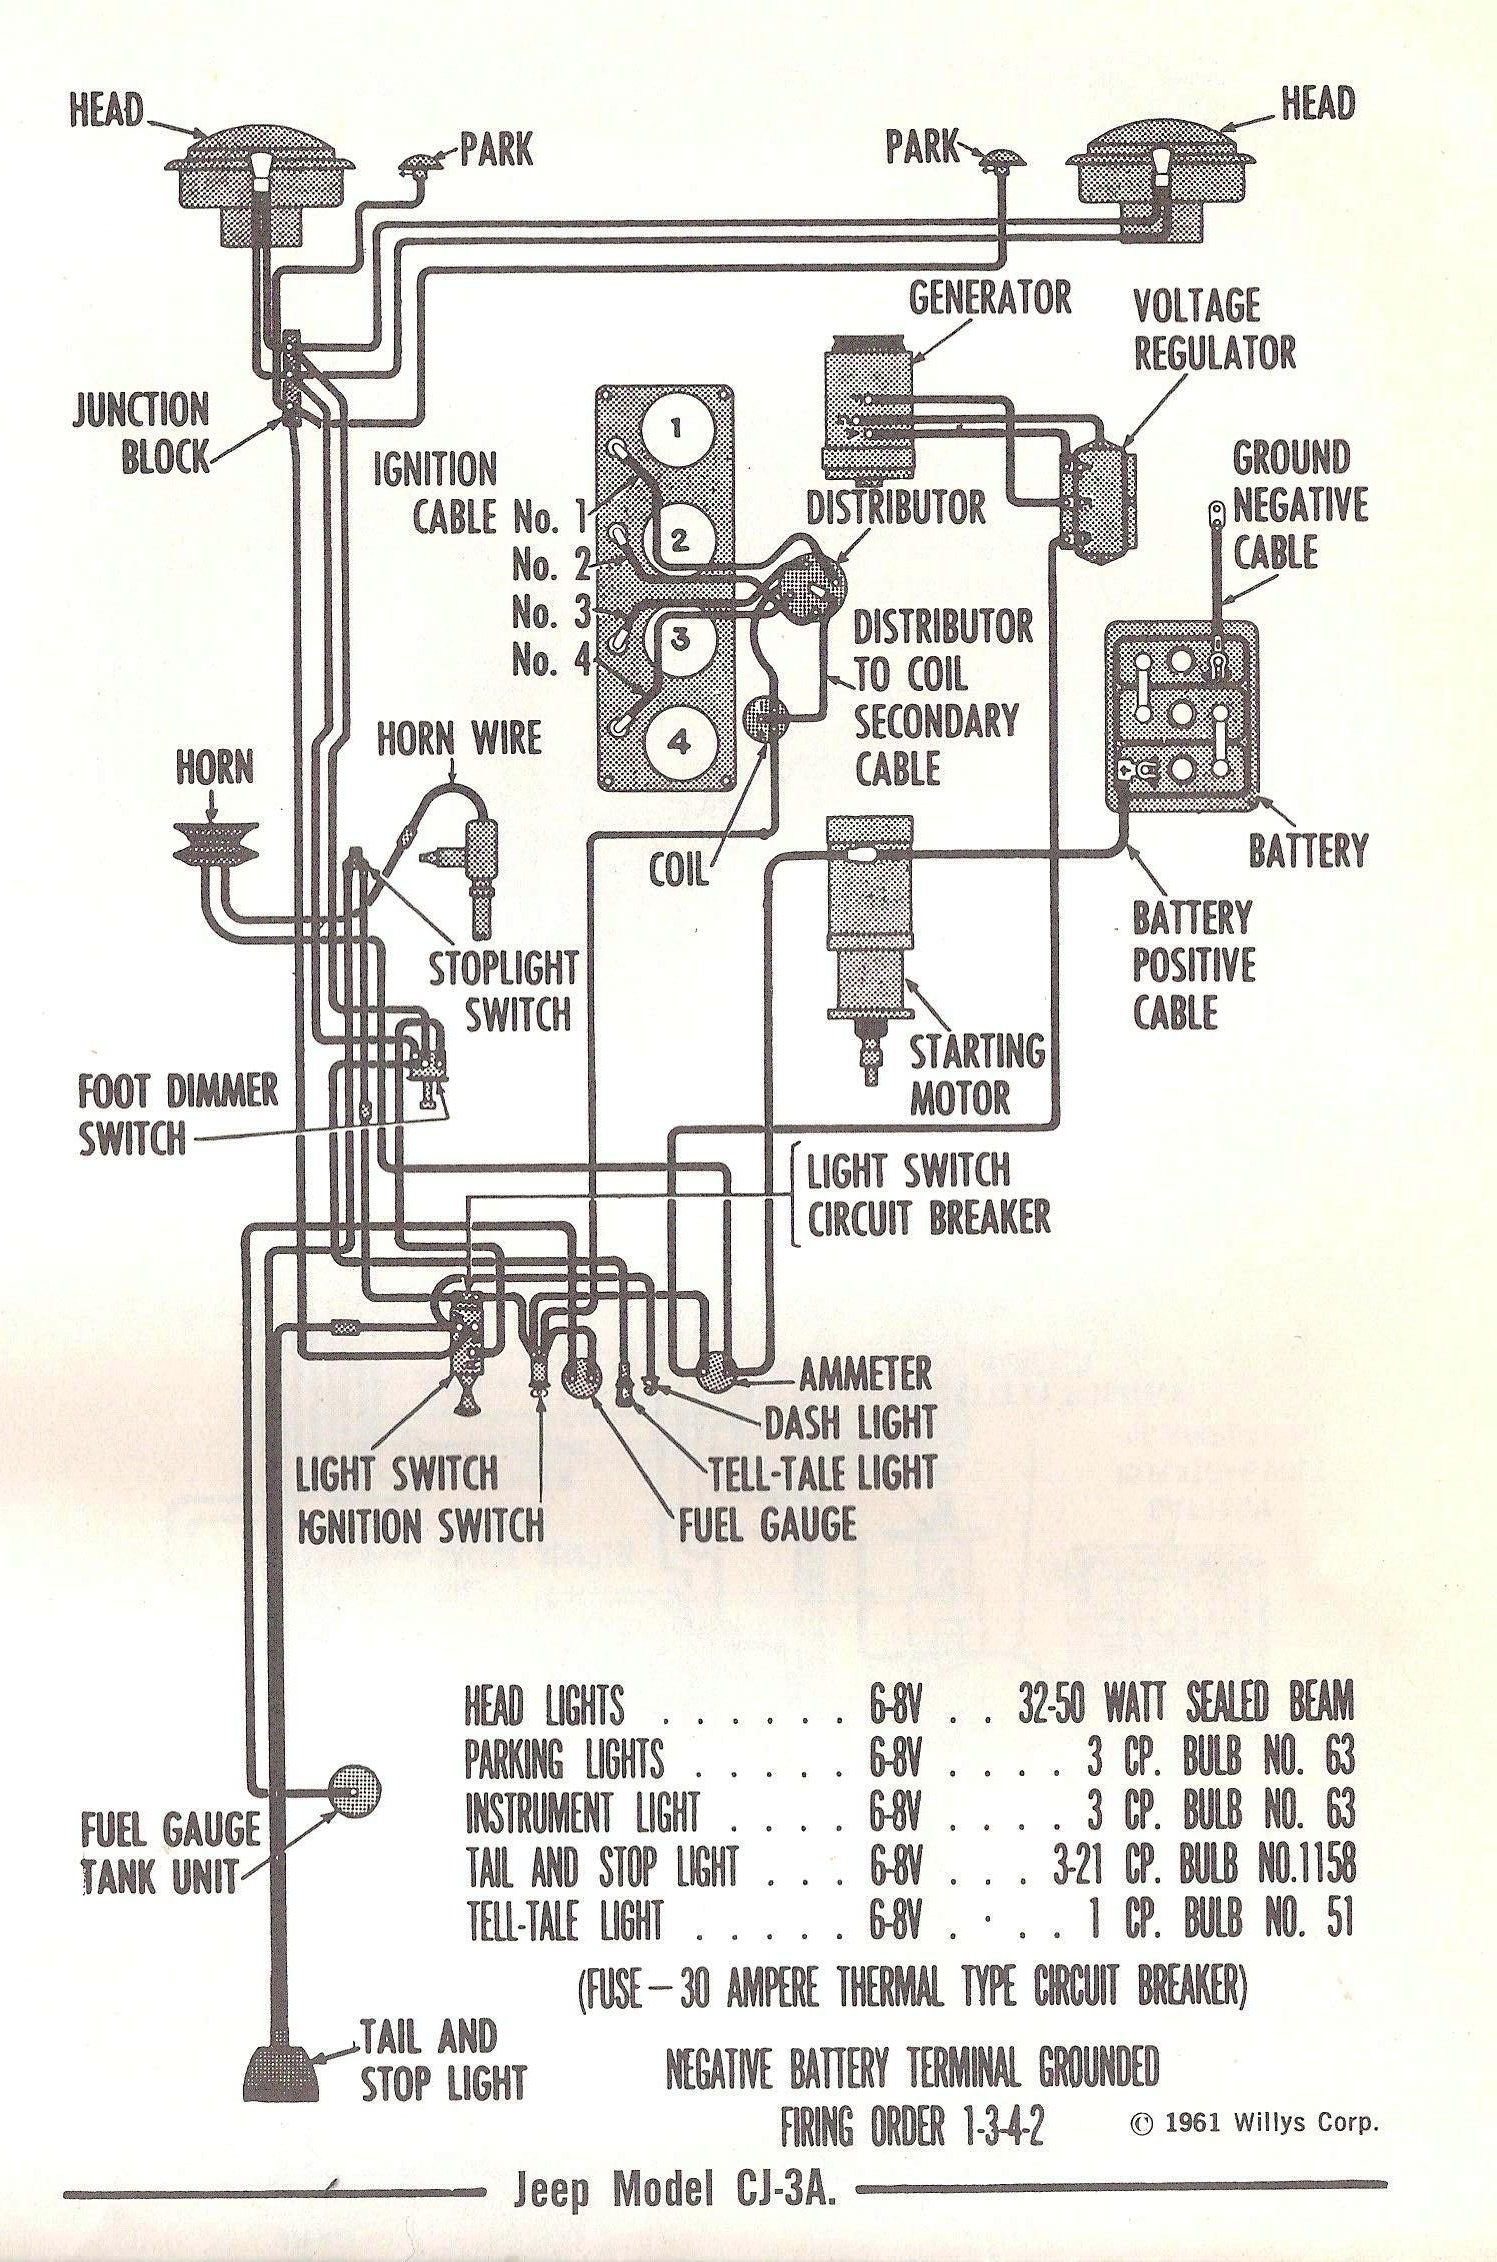 1953 Willys Wiring Diagram Schematic Ford Diesel Tractor Wiring Diagram For Wiring Diagram Schematics